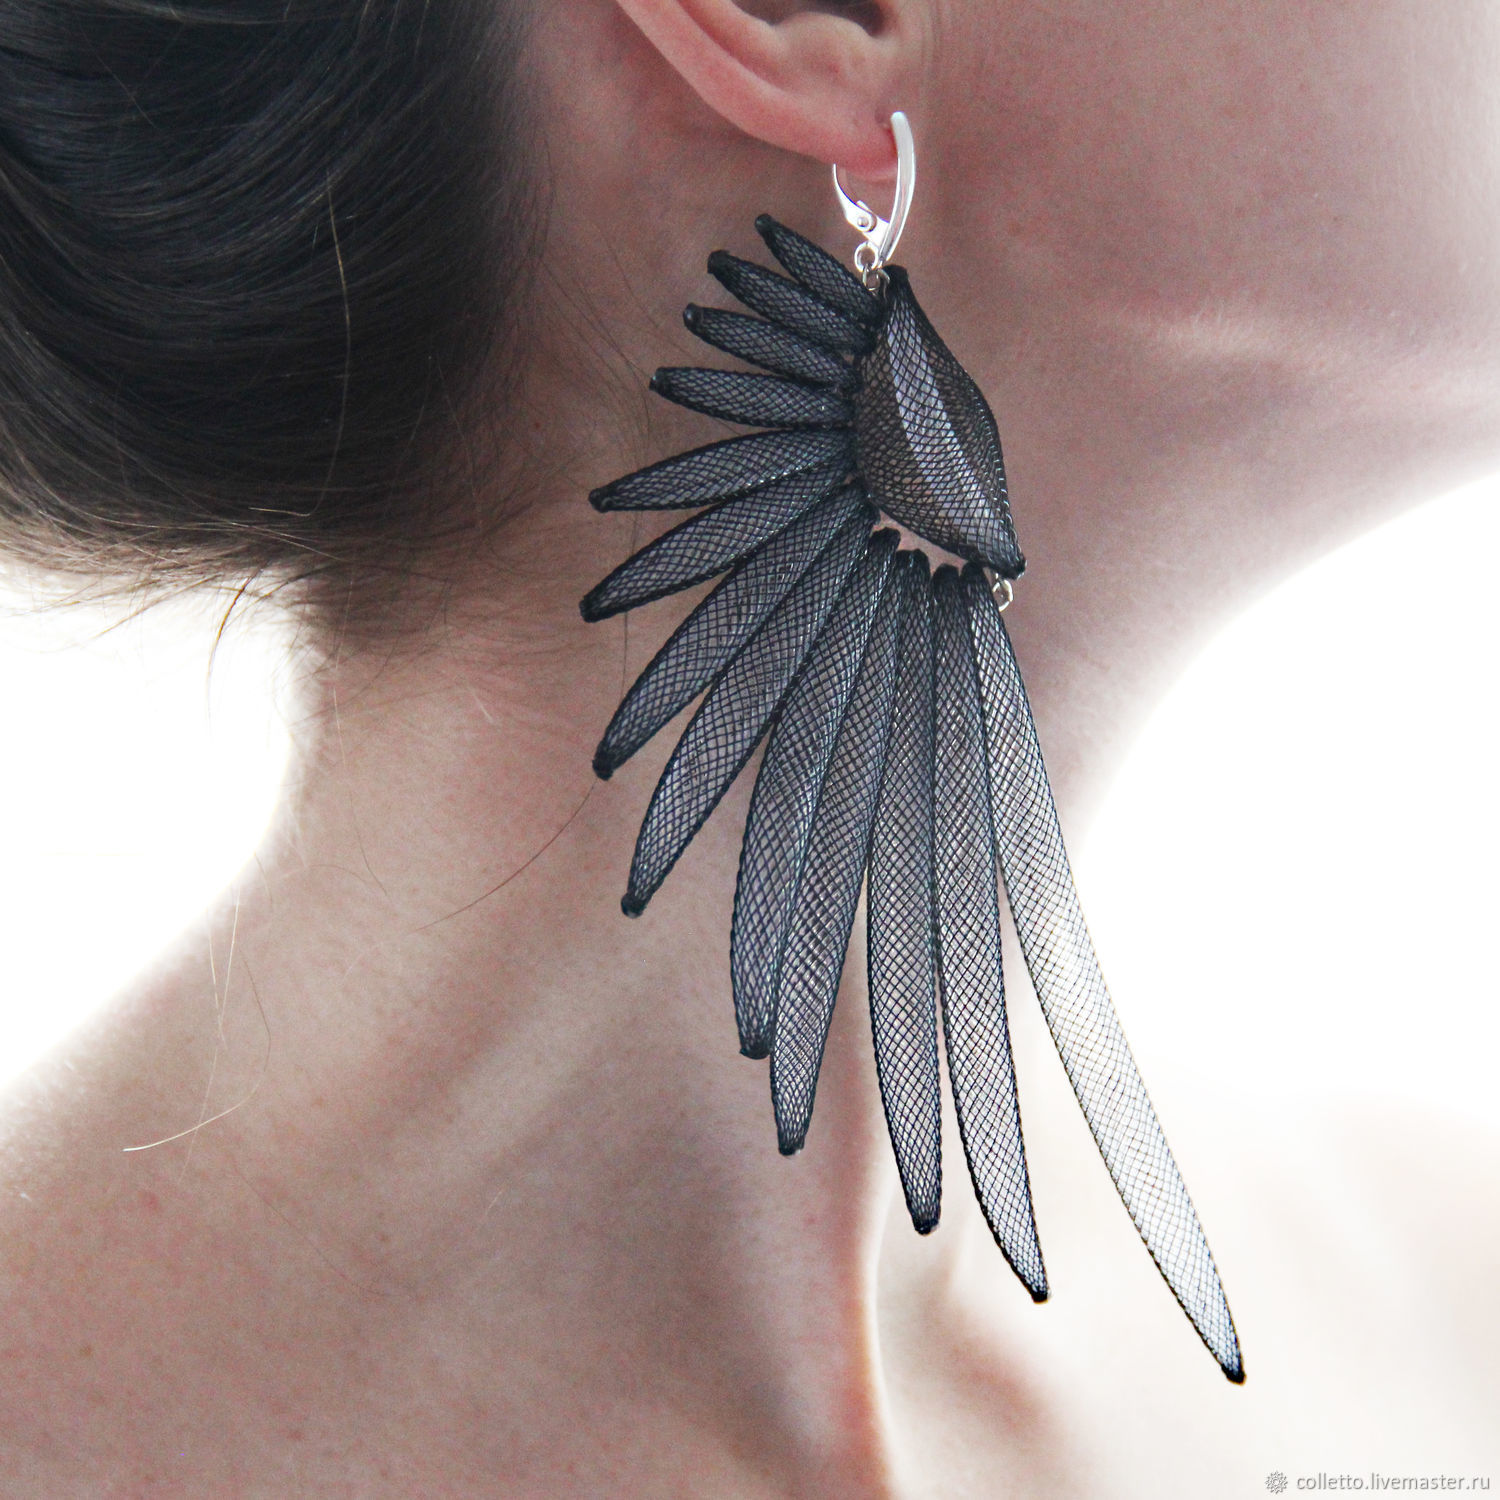 Online Ping On Earrings Handmade Order Wings Colletto Livemaster